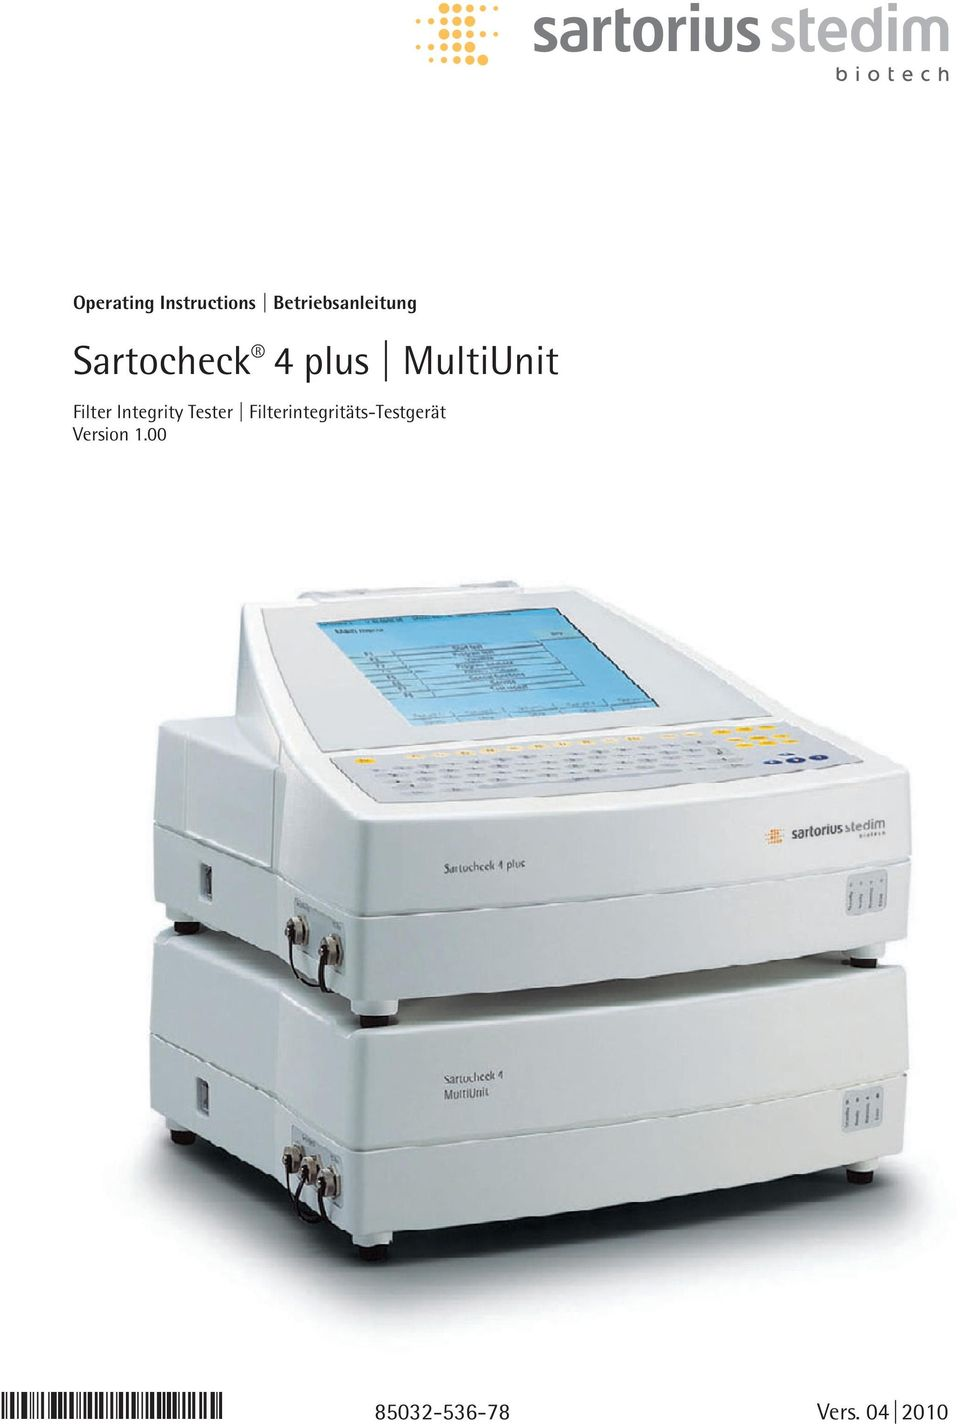 MultiUnit Filter Integrity Tester